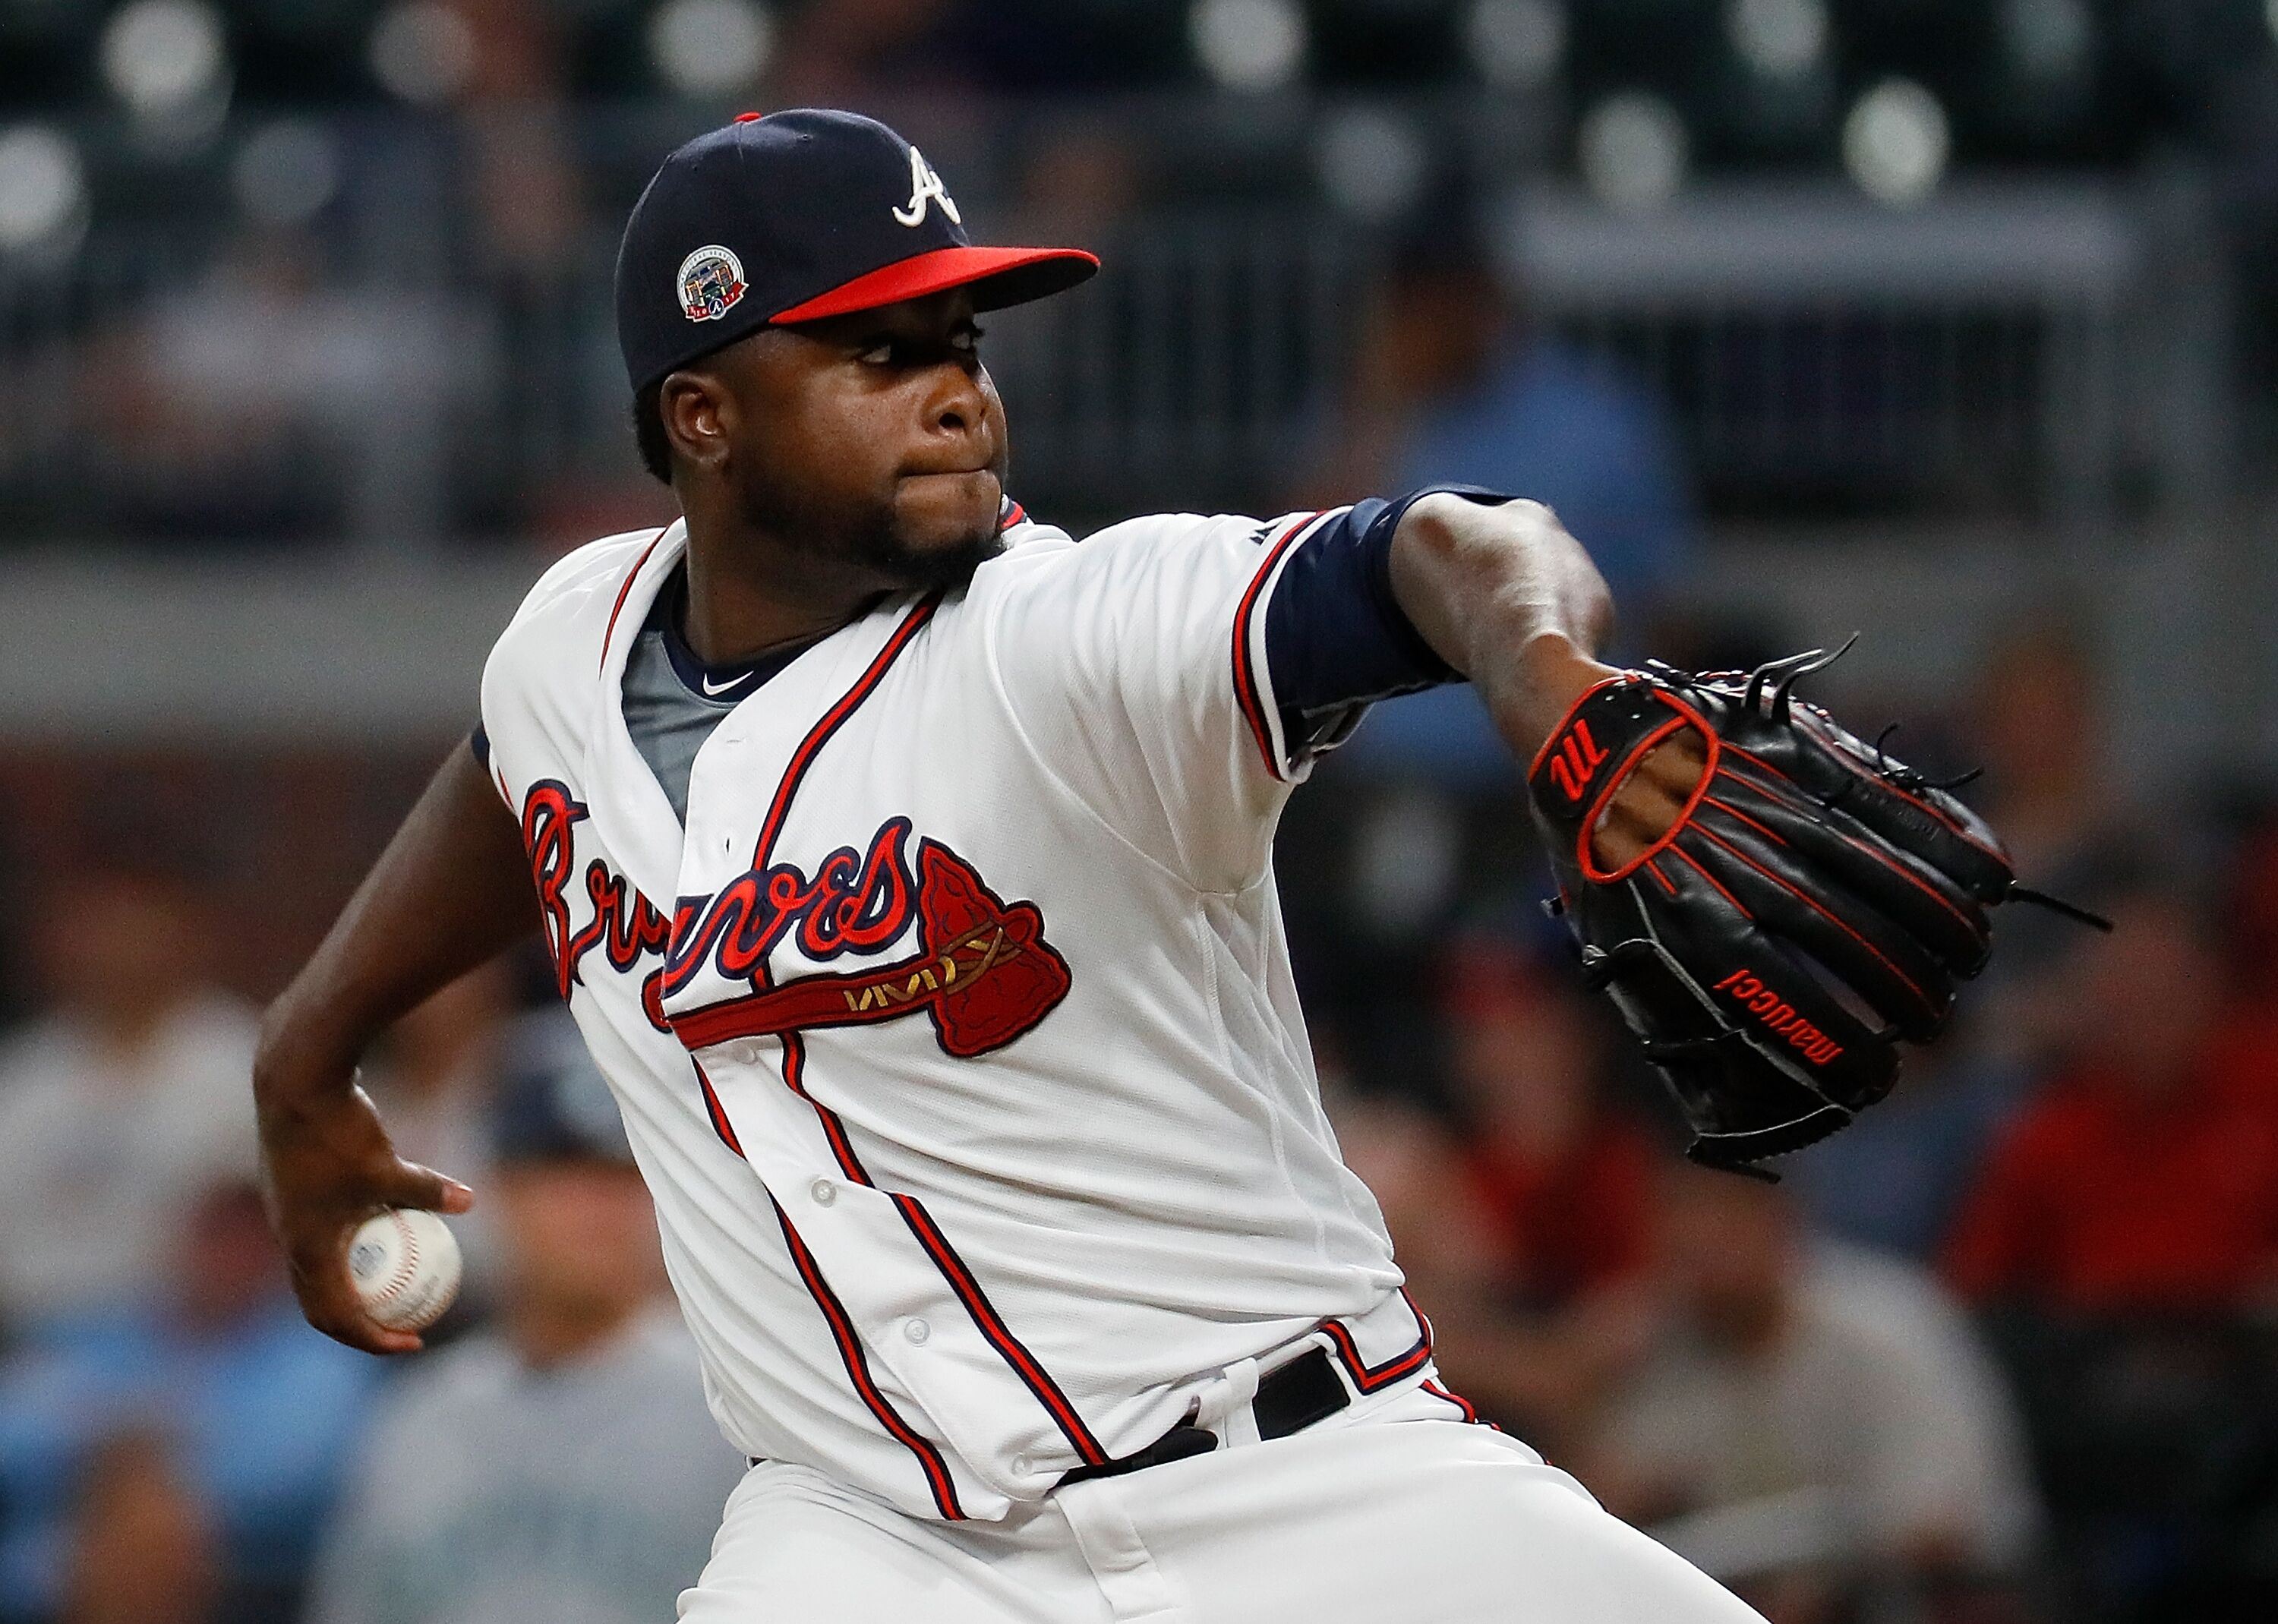 Should Vizcaino or Minter be the Atlanta Braves closer for